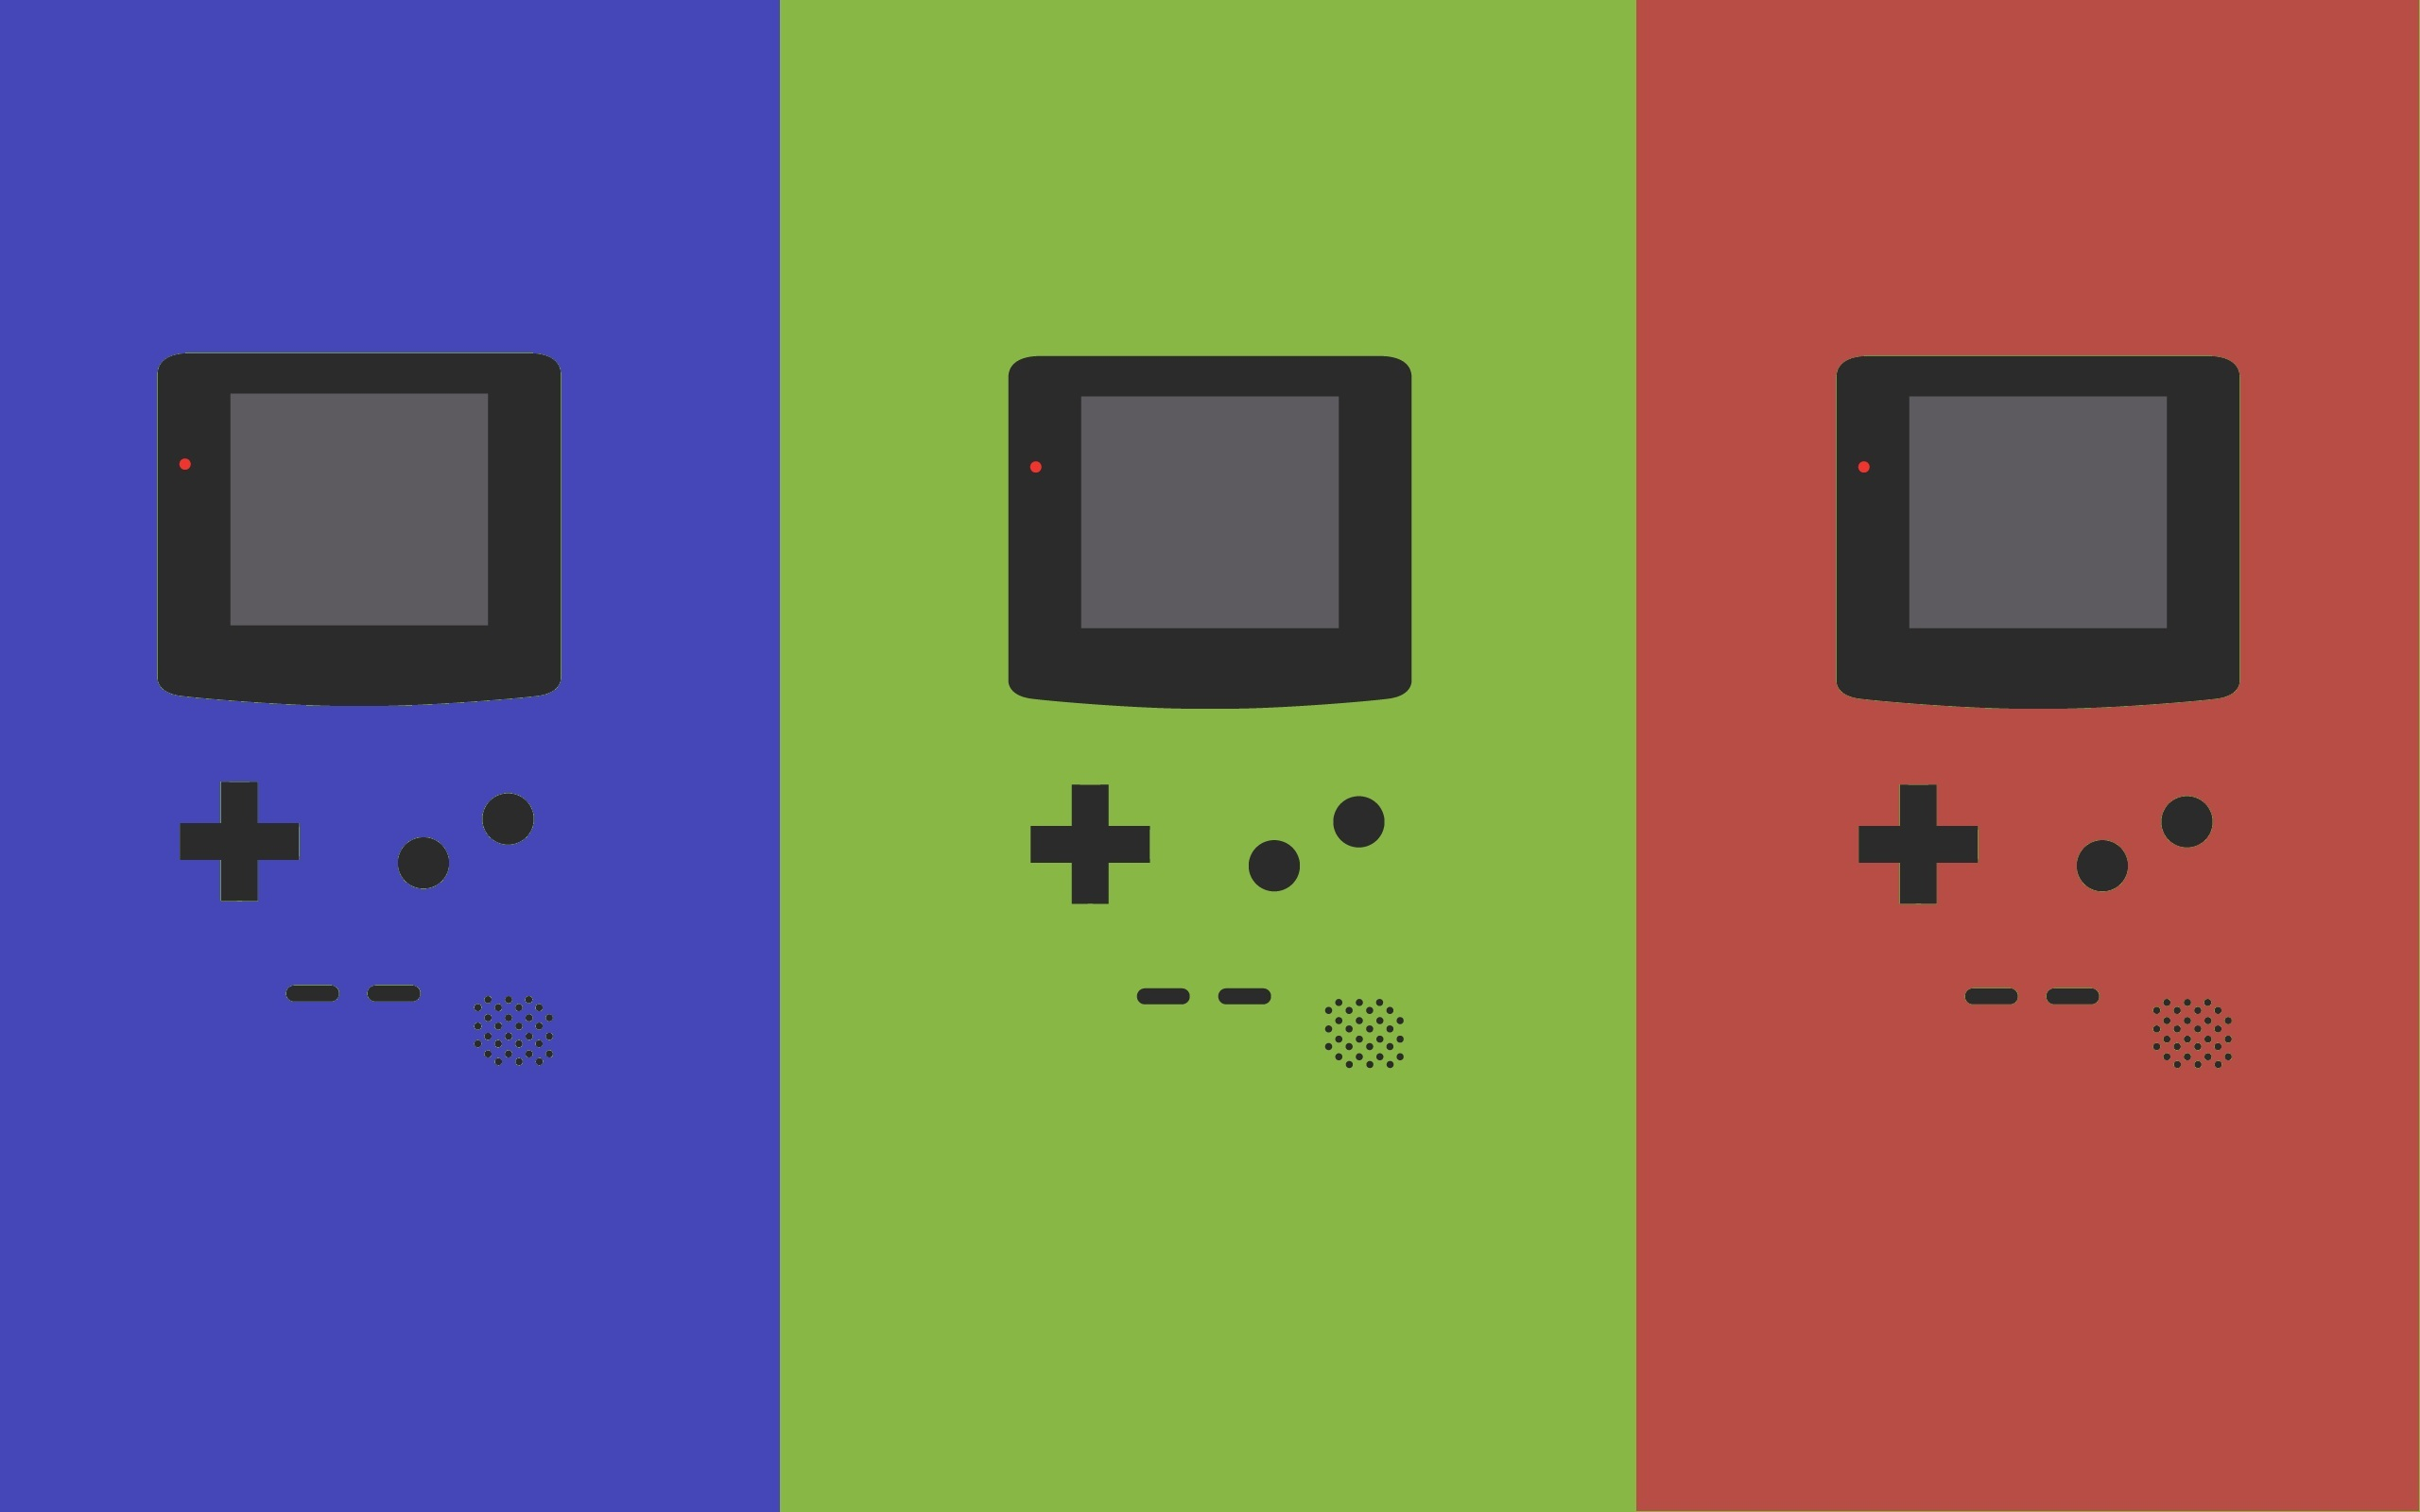 Gameboy Iphone X Wallpaper Gameboy New Hd Wallpapers High Quality All Hd Wallpapers